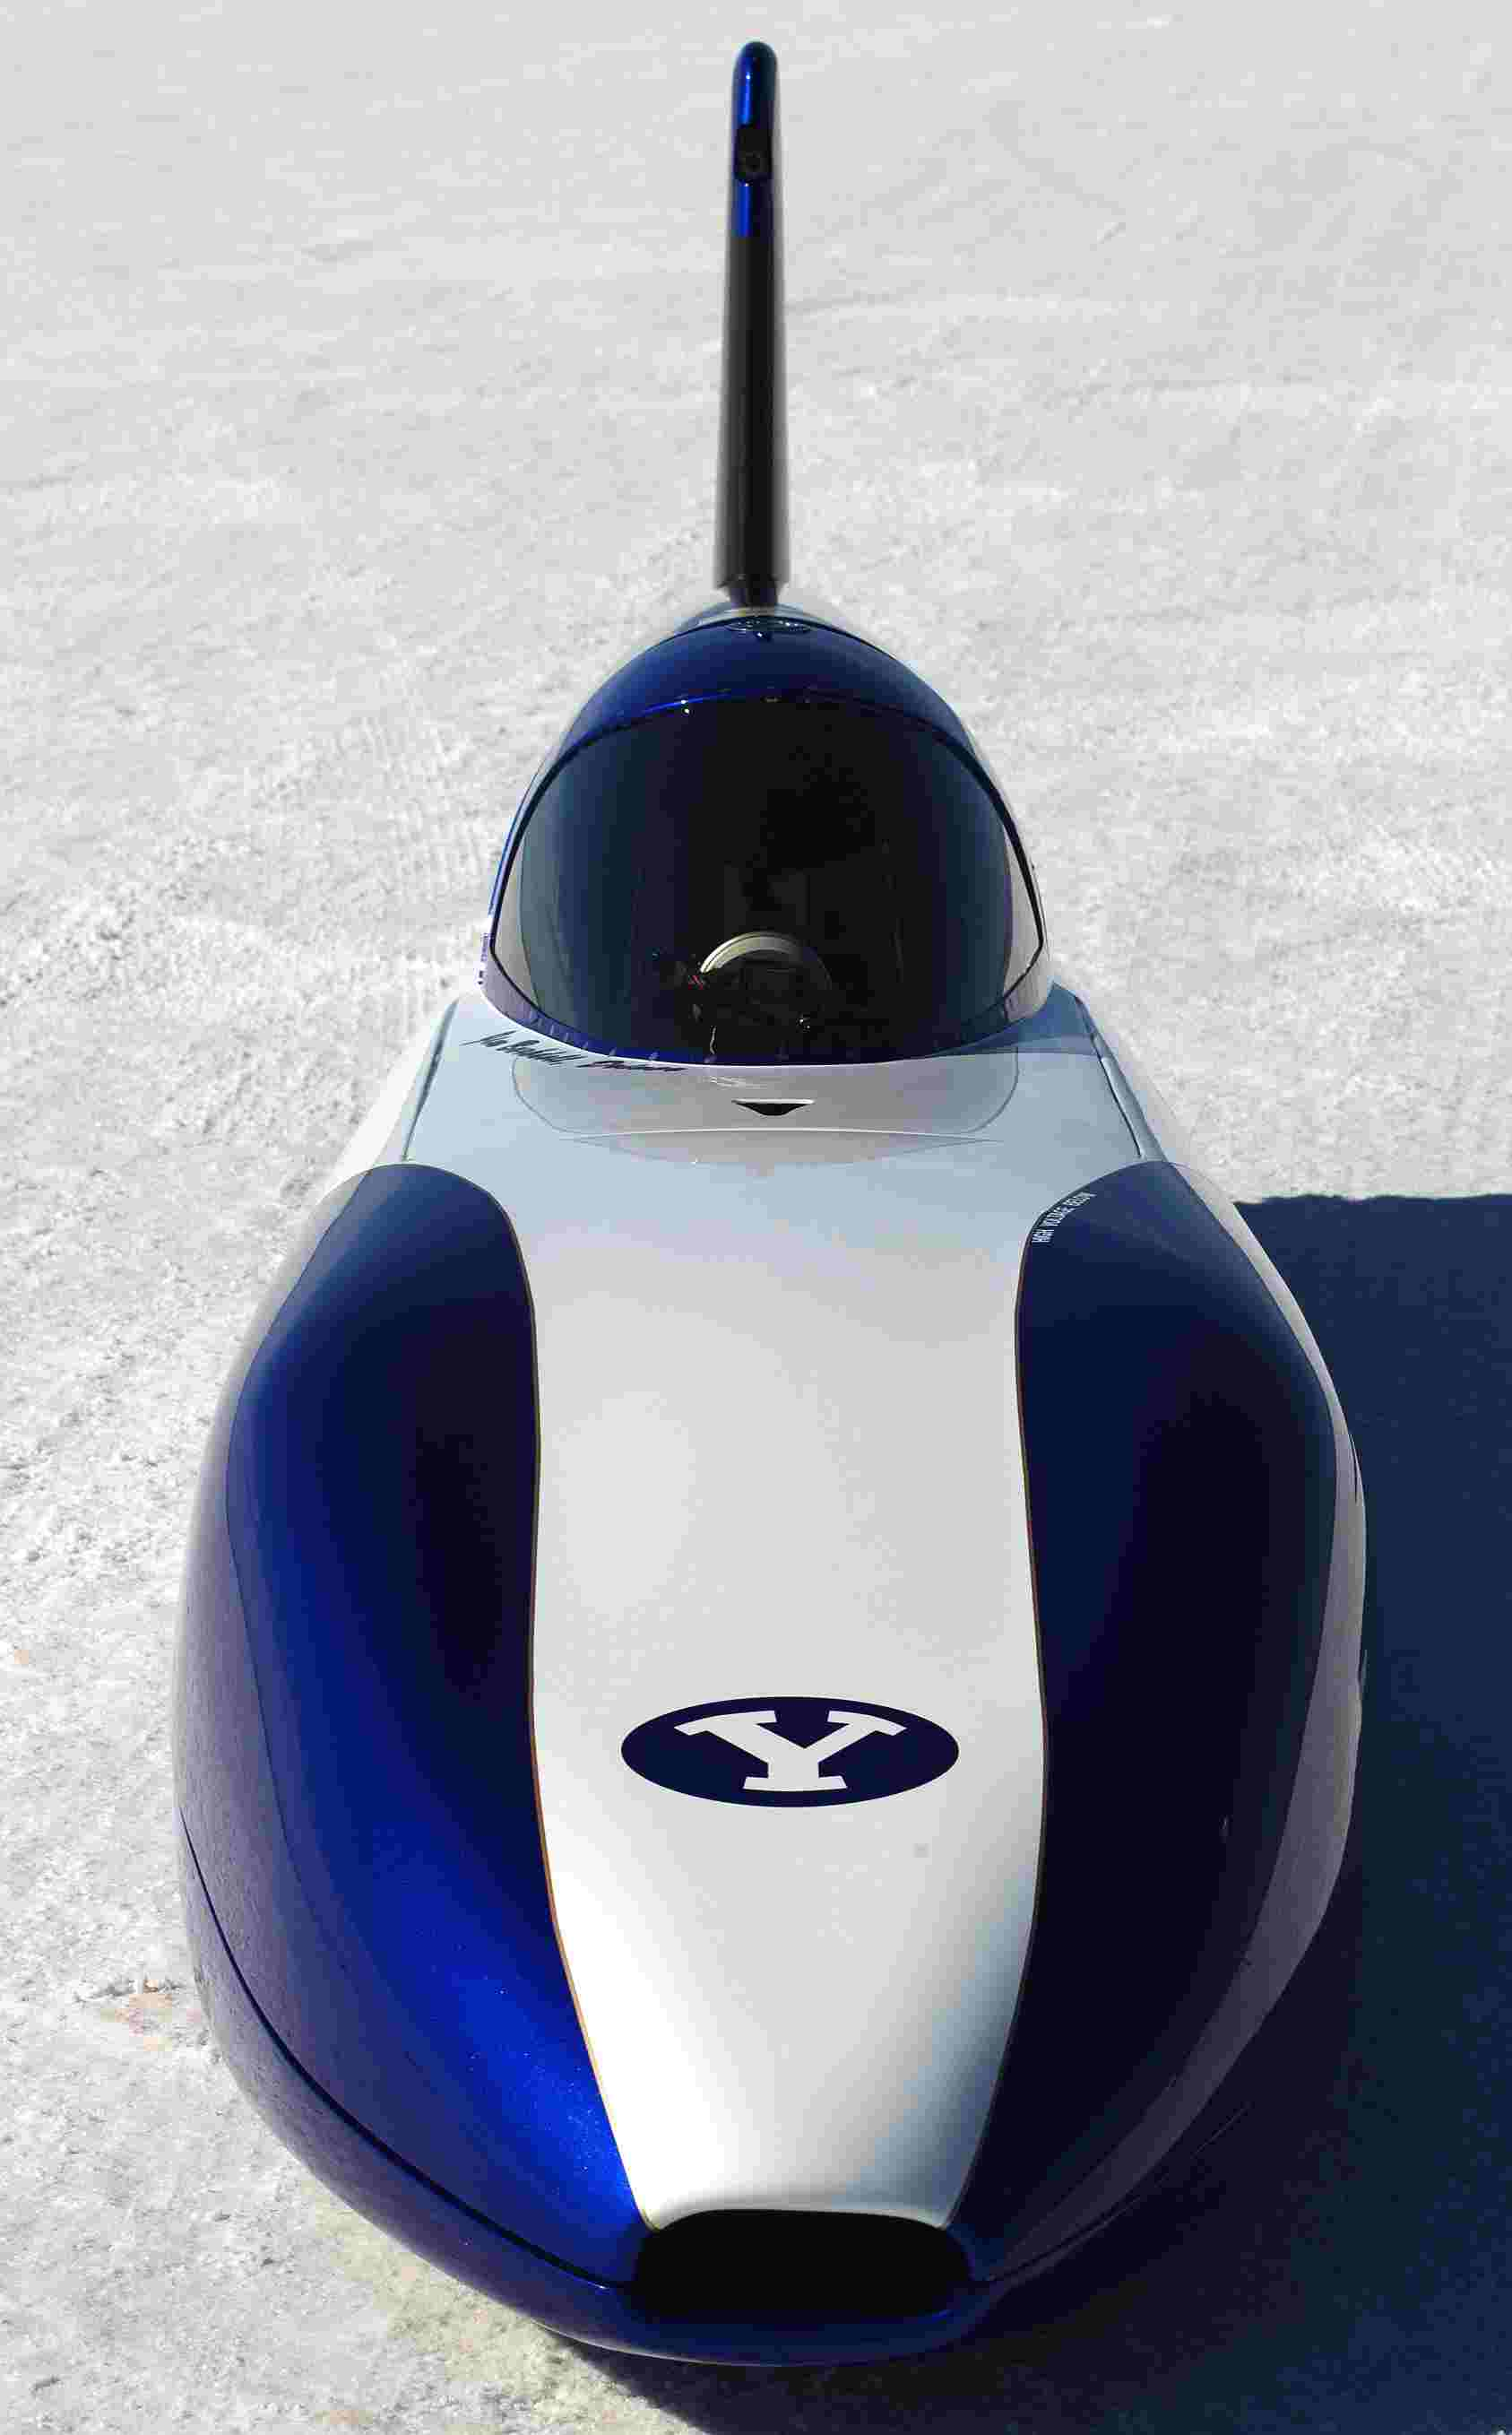 BYU electric streamliner record breaking car 155 mph 2011